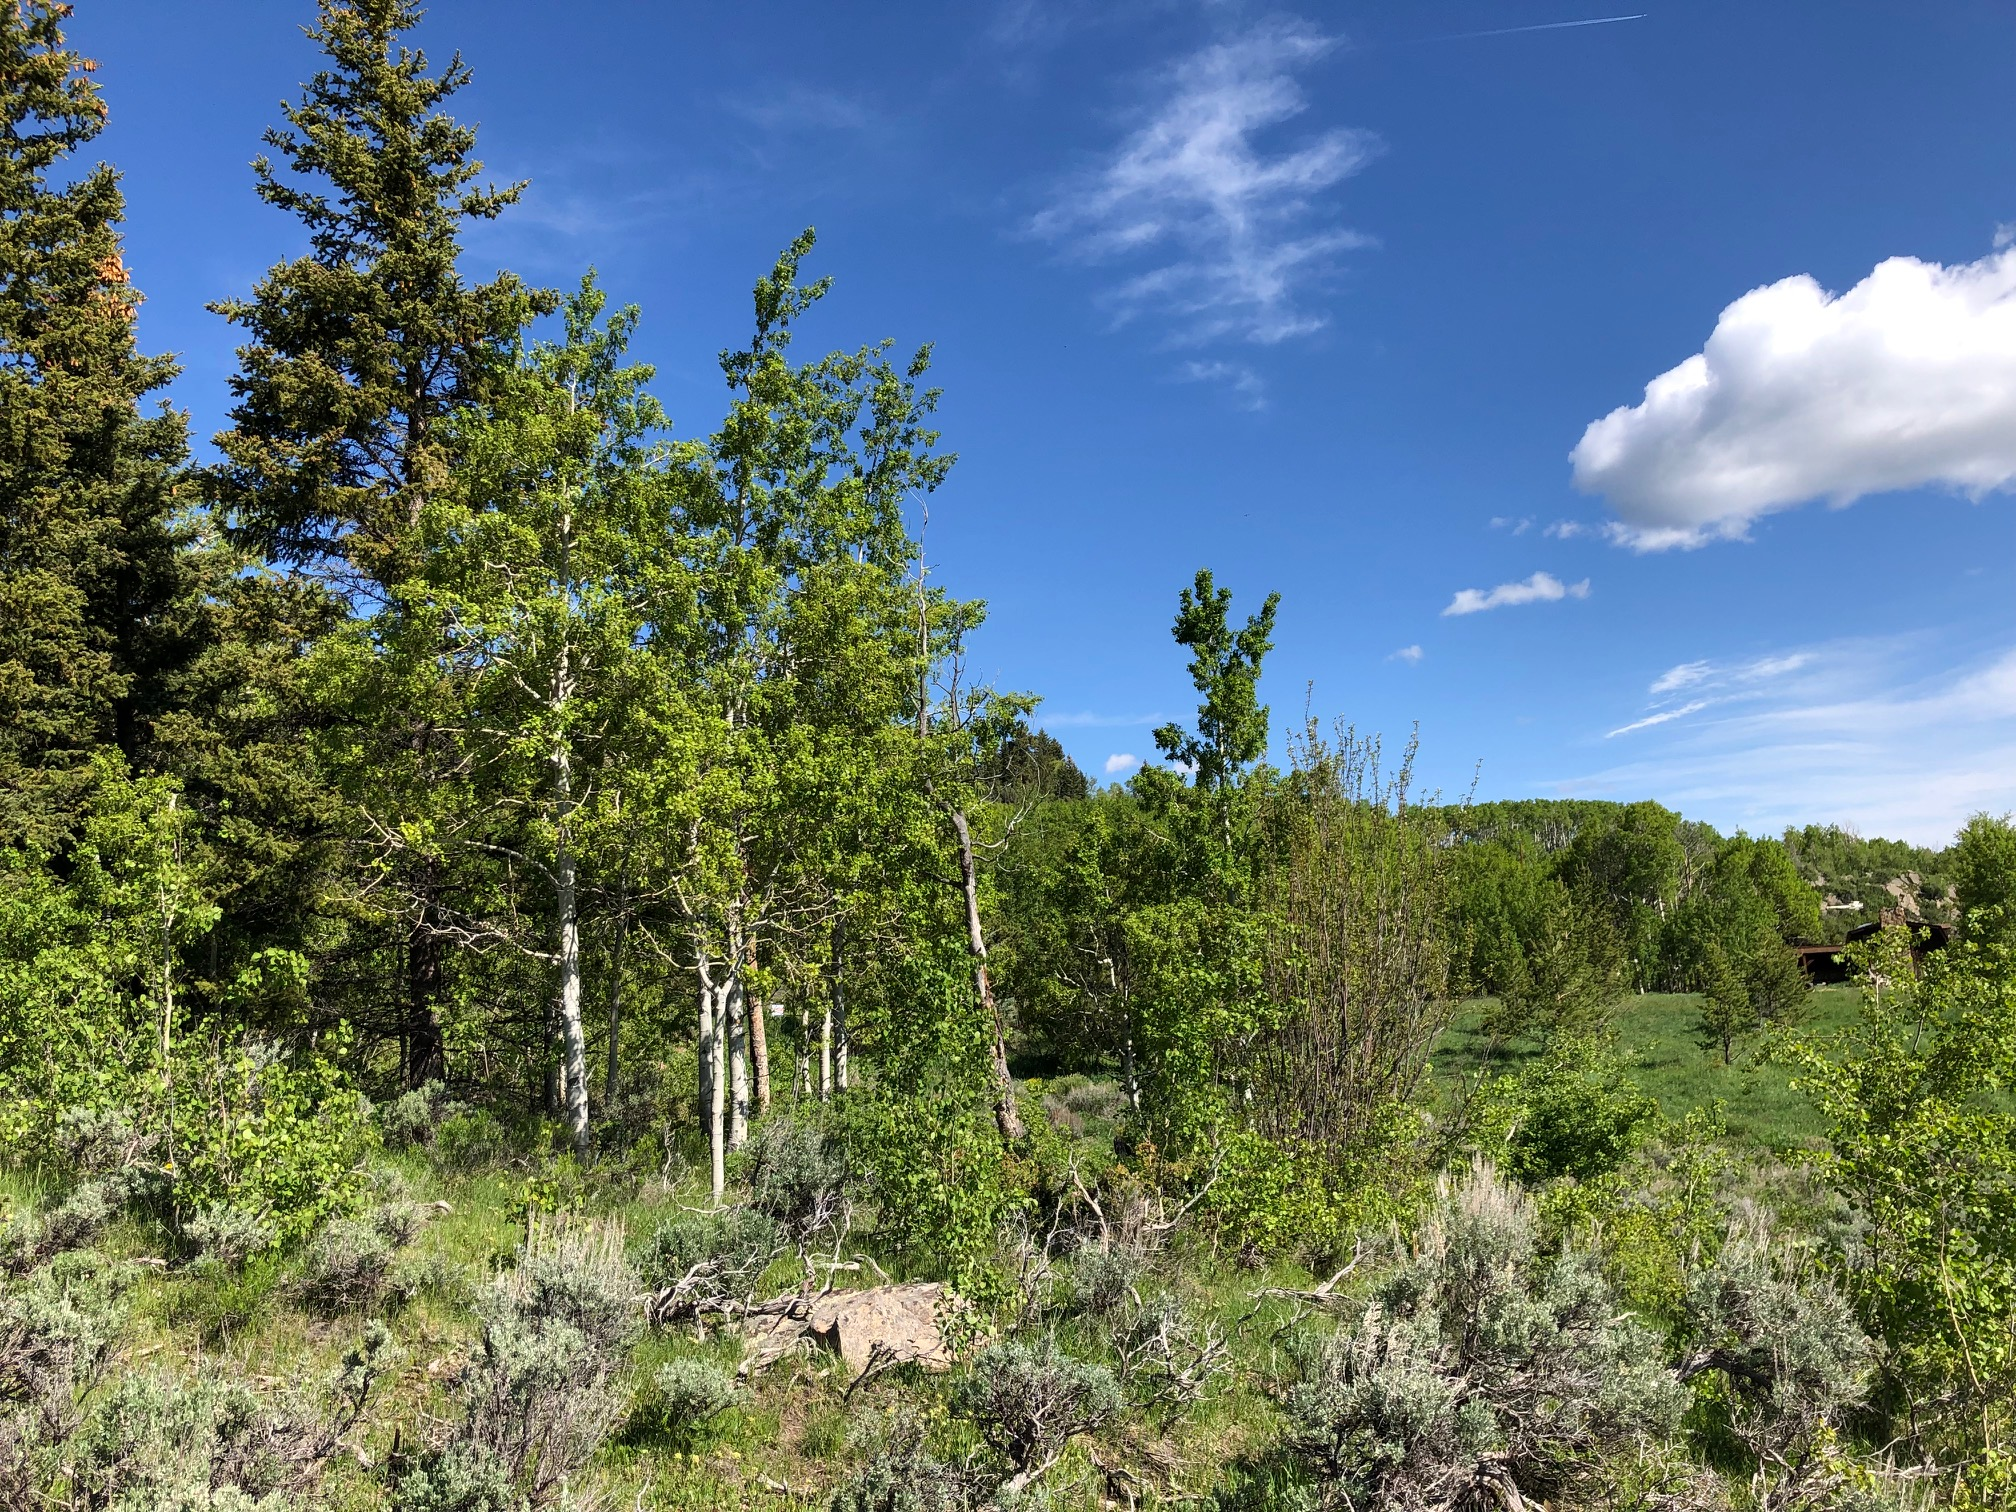 1572 County Road 162 - Lovely 5+ acre mountain property with a creek, trees and a beaver pond. Don't miss the amazing views of the Continental Divide to the east. Roads are accessible year round and County maintained. This property is just minutes from National Forest access. Listed for $65,000